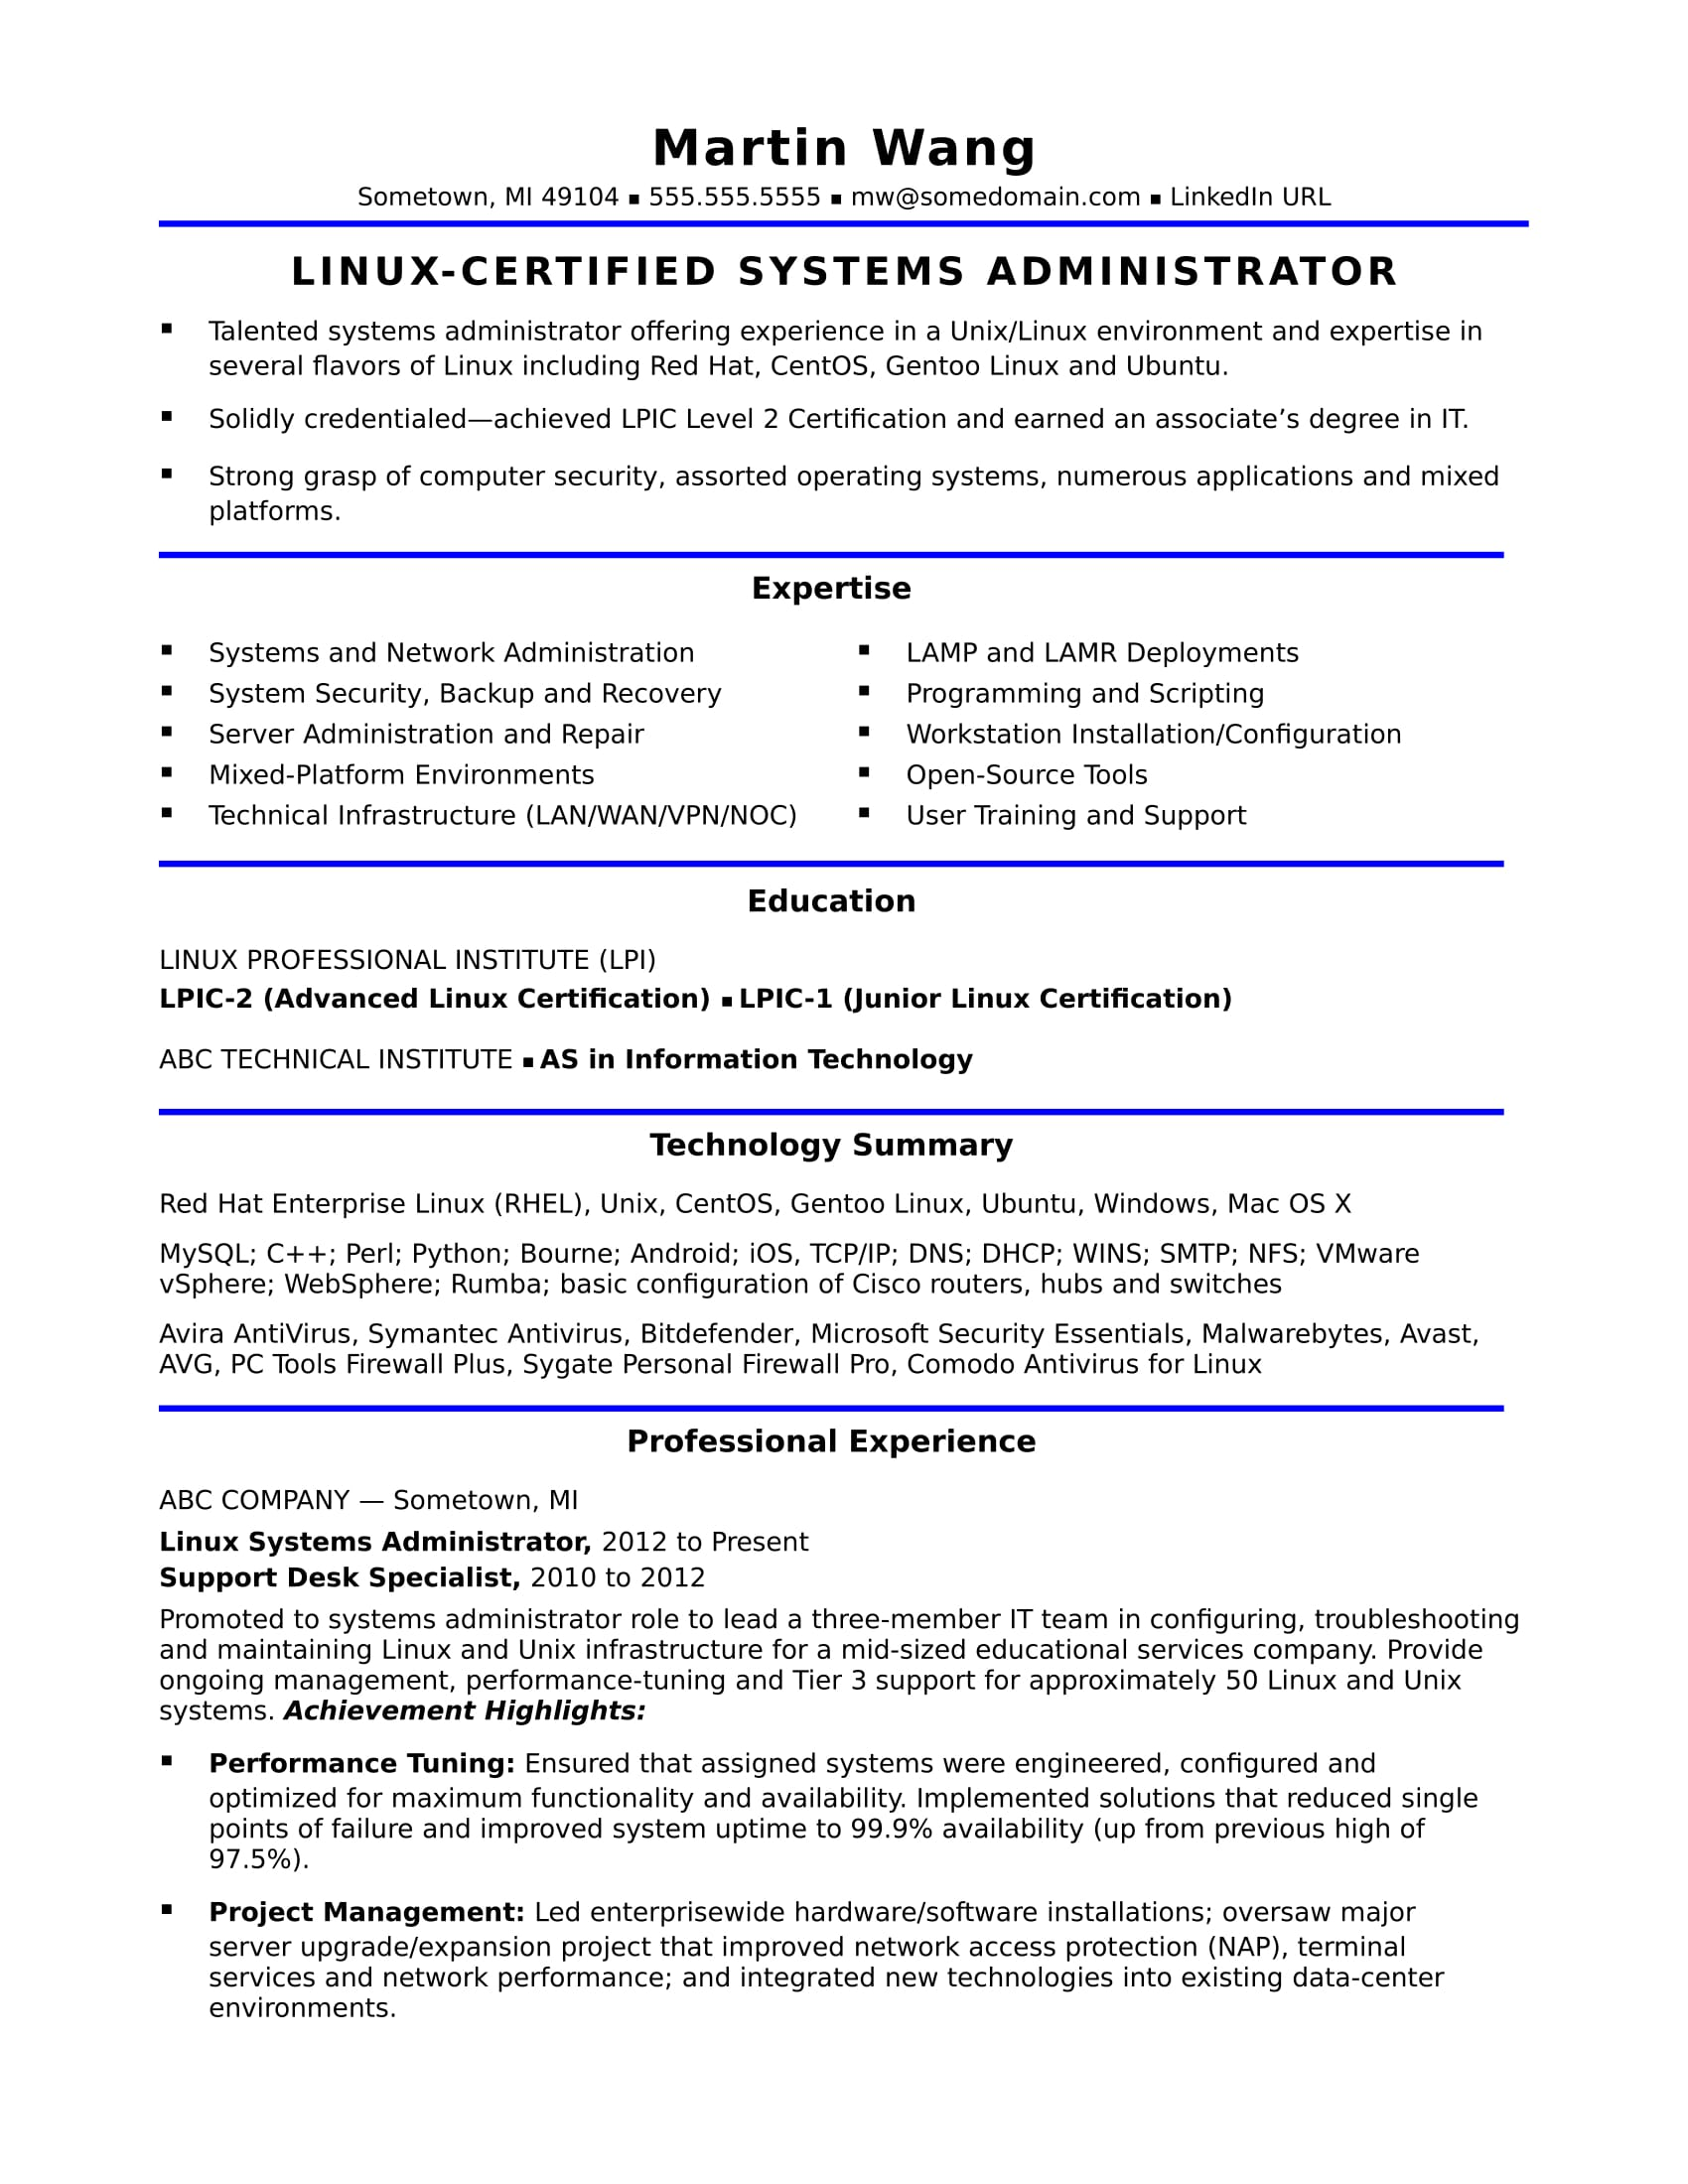 Linux Server Administrator Resume